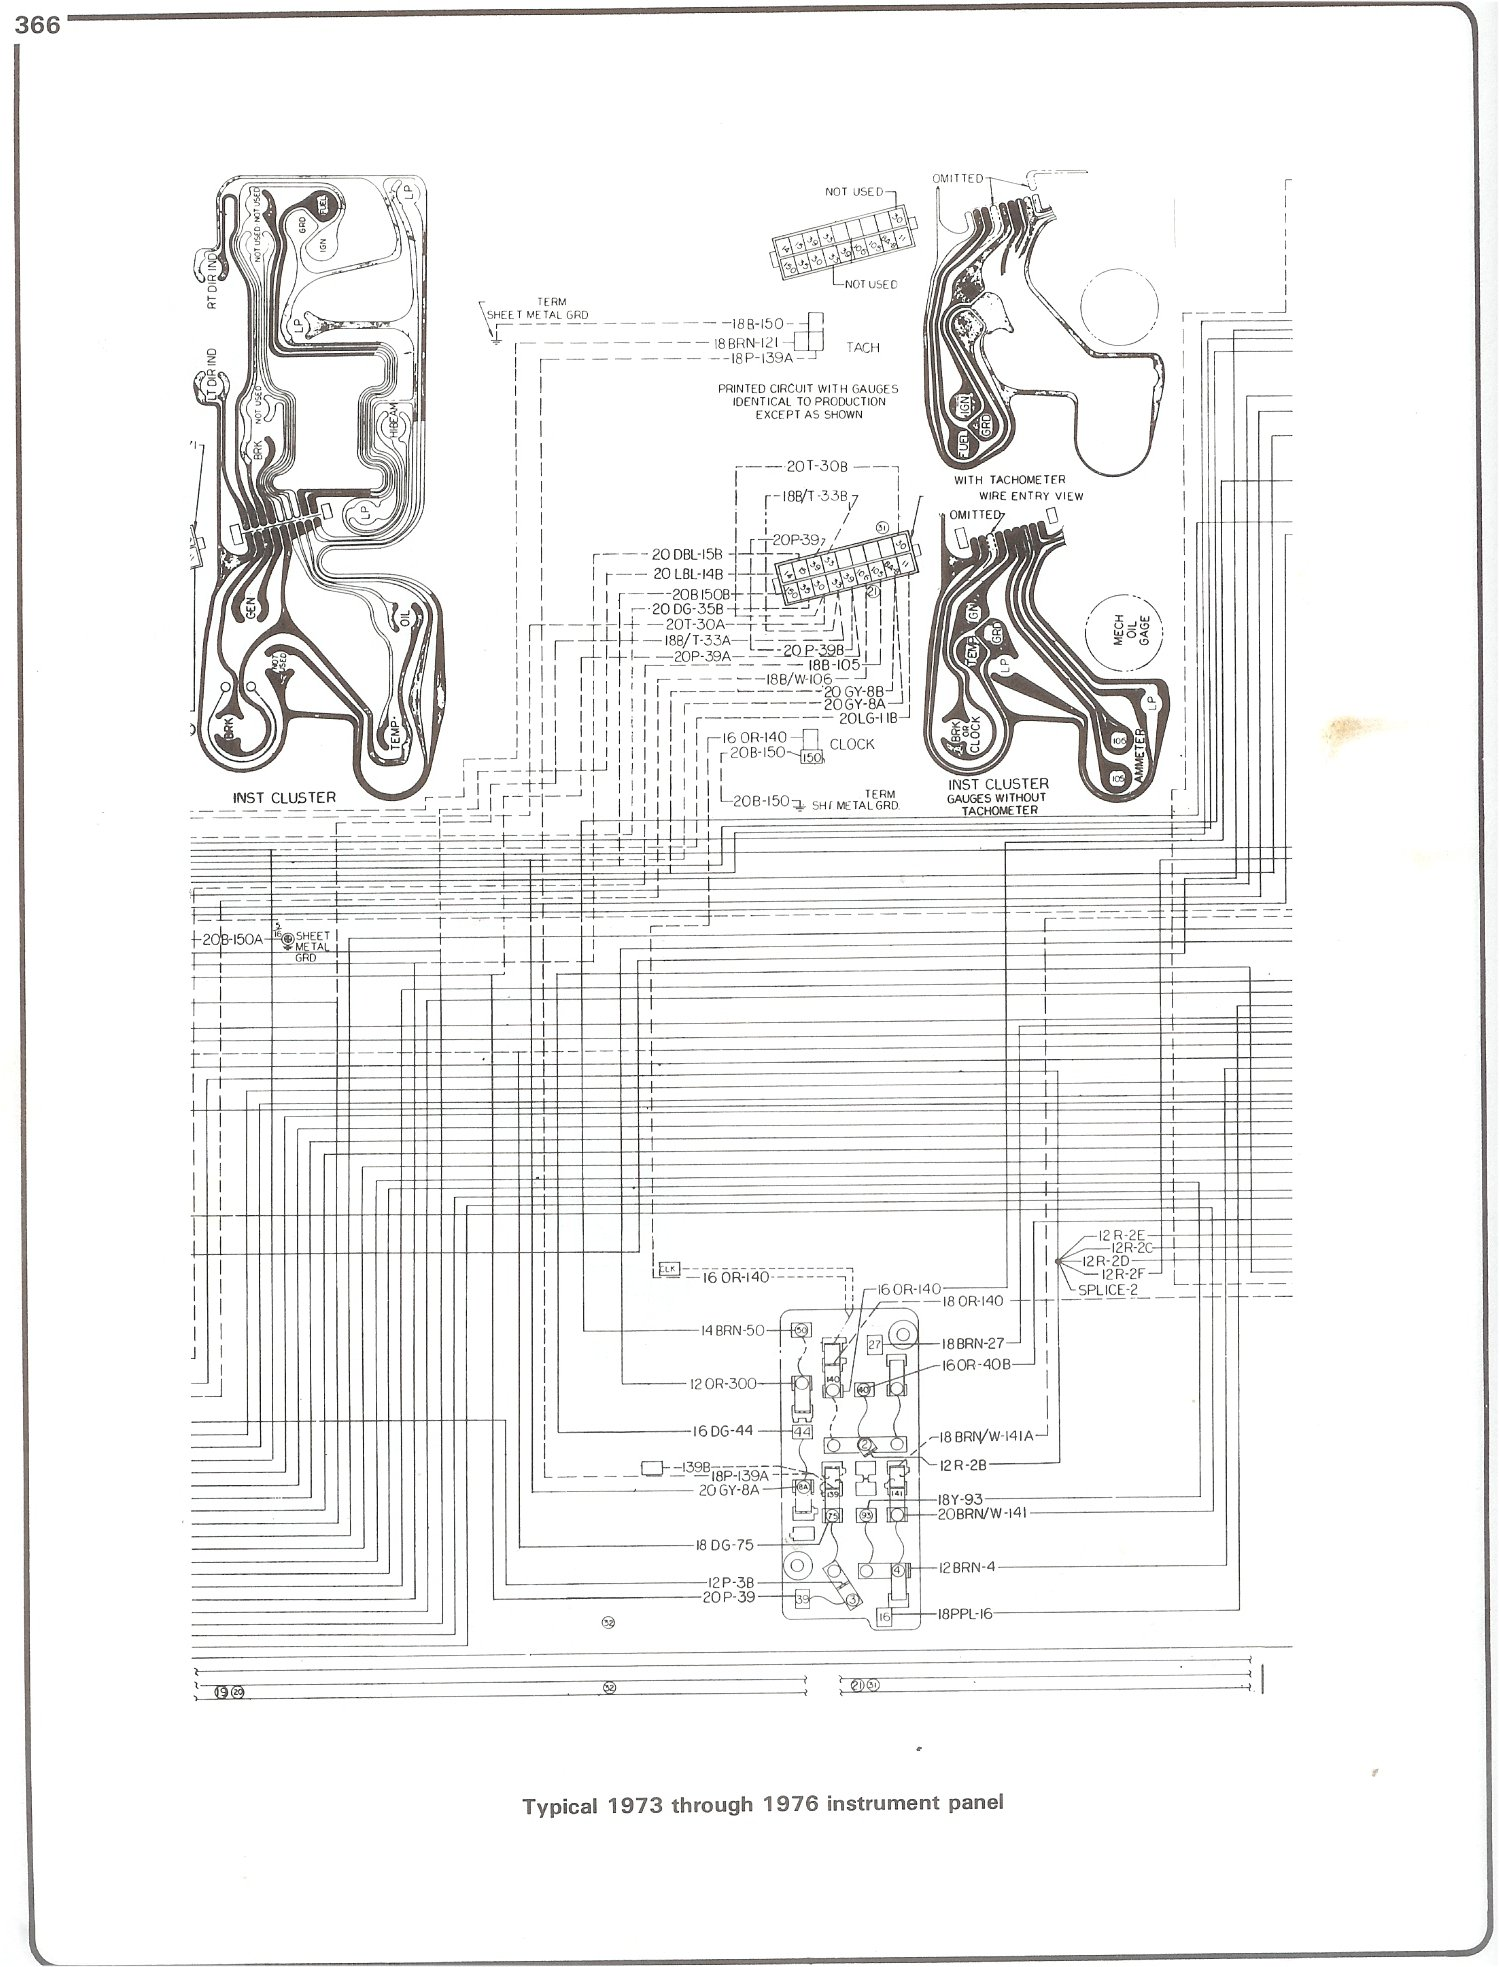 73 76_instrument complete 73 87 wiring diagrams 1985 chevy truck wiring harness at bayanpartner.co